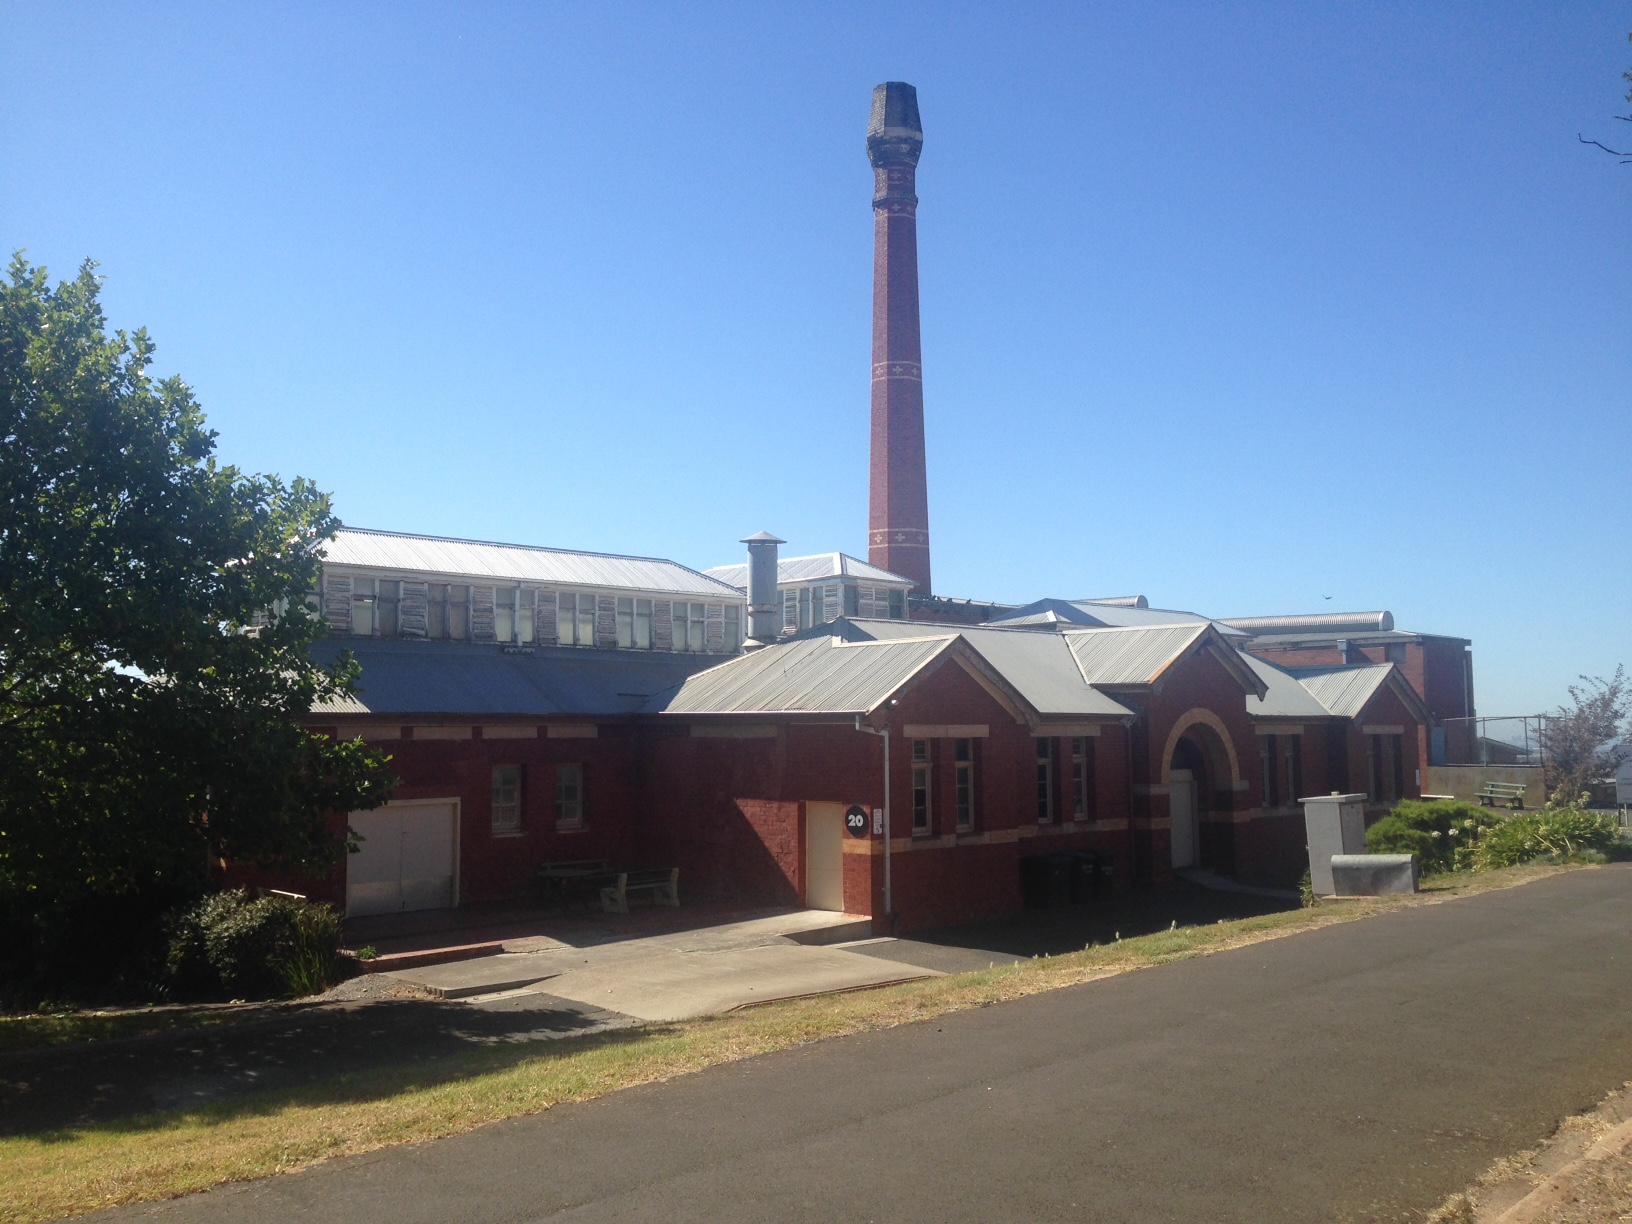 The Boilerhouse - Building 20. Look for the tall chimney!